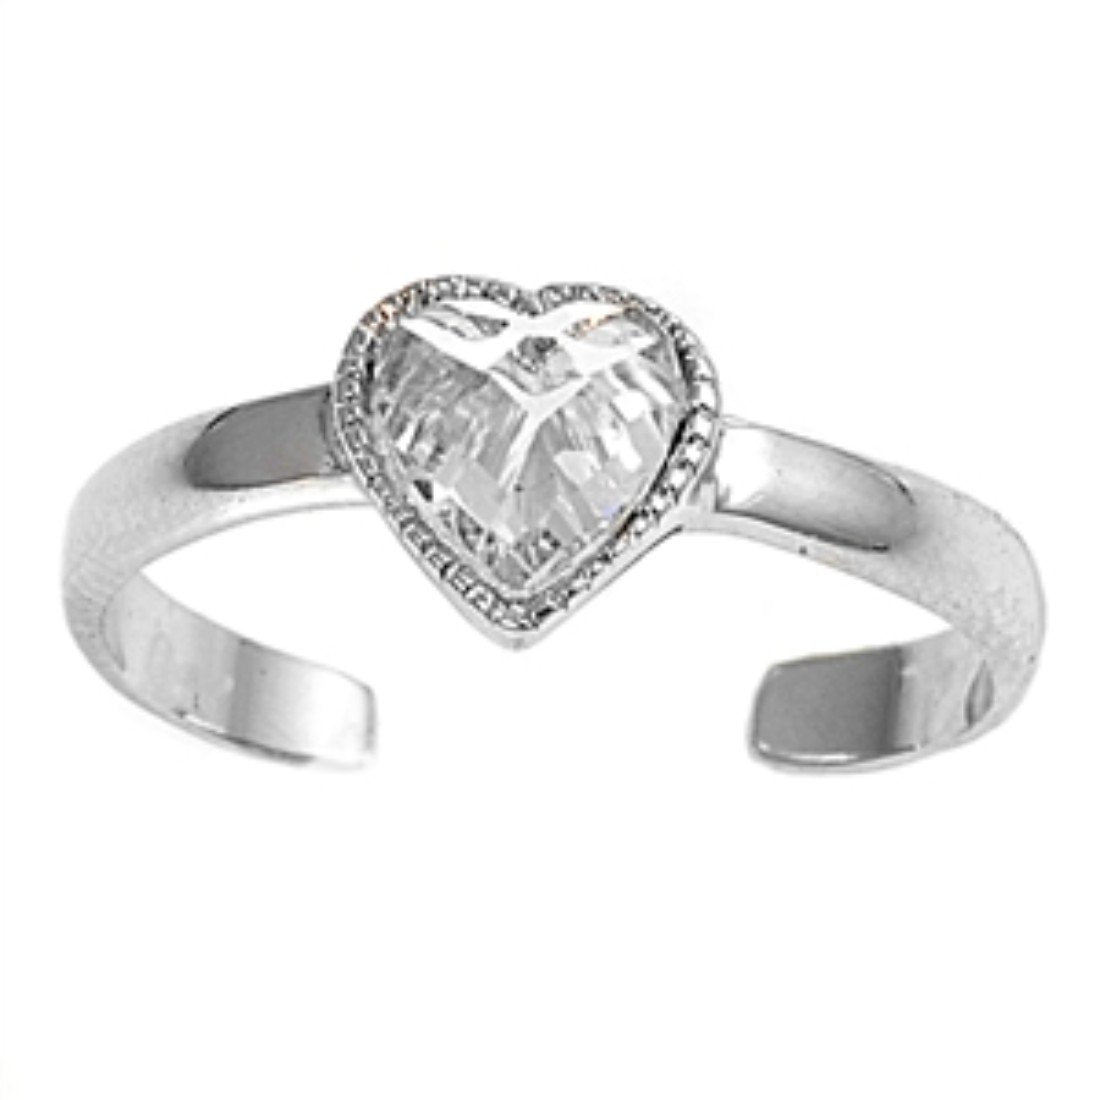 Silver Toe Ring Heart Simulated Cubic Zirconia Adjustable 925 Sterling Silver (6mm)